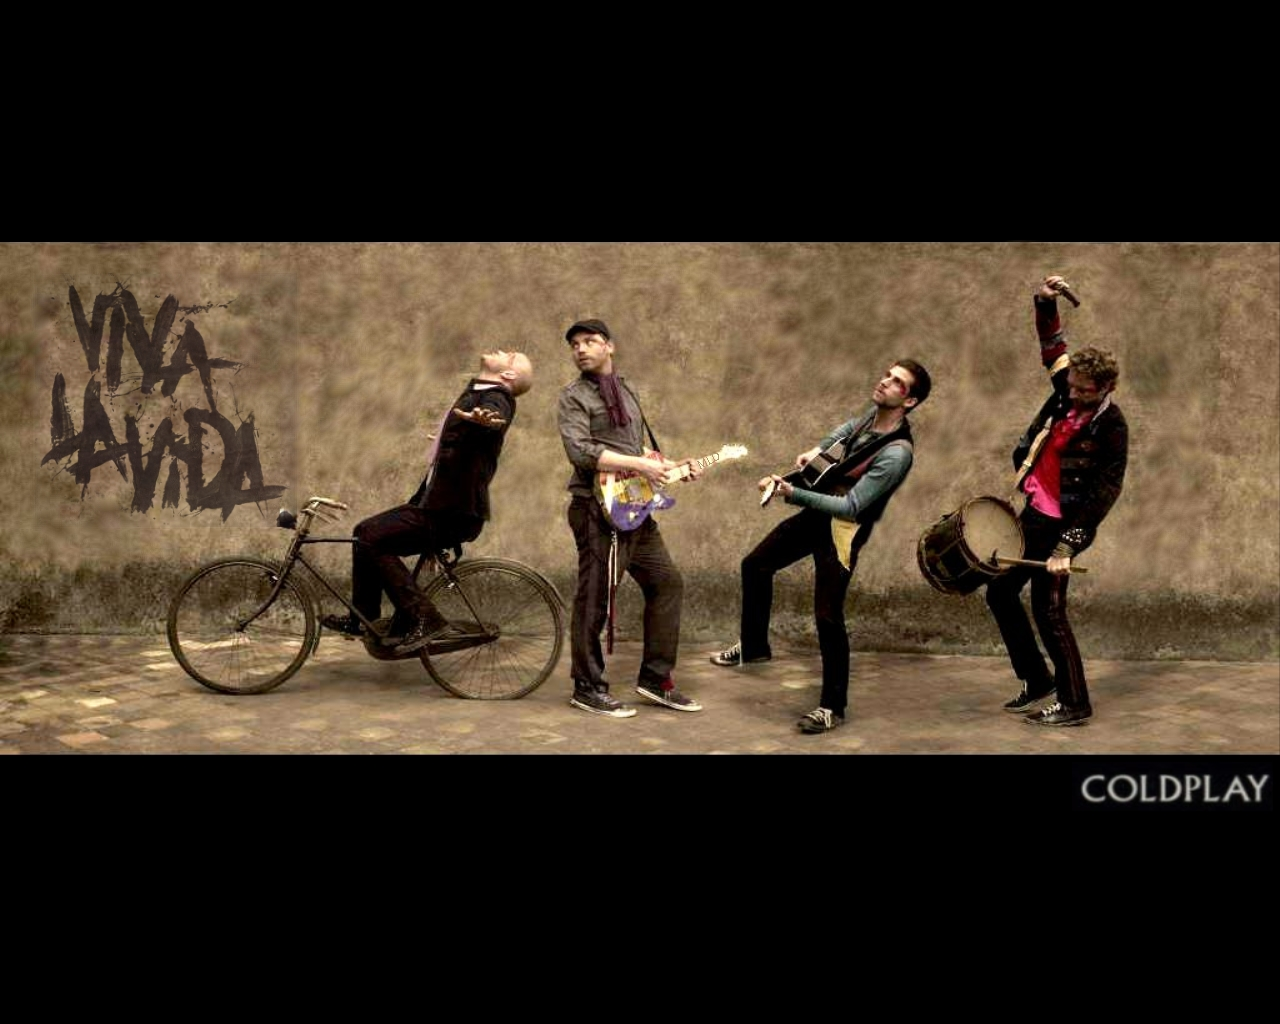 Coldplay images coldpl...